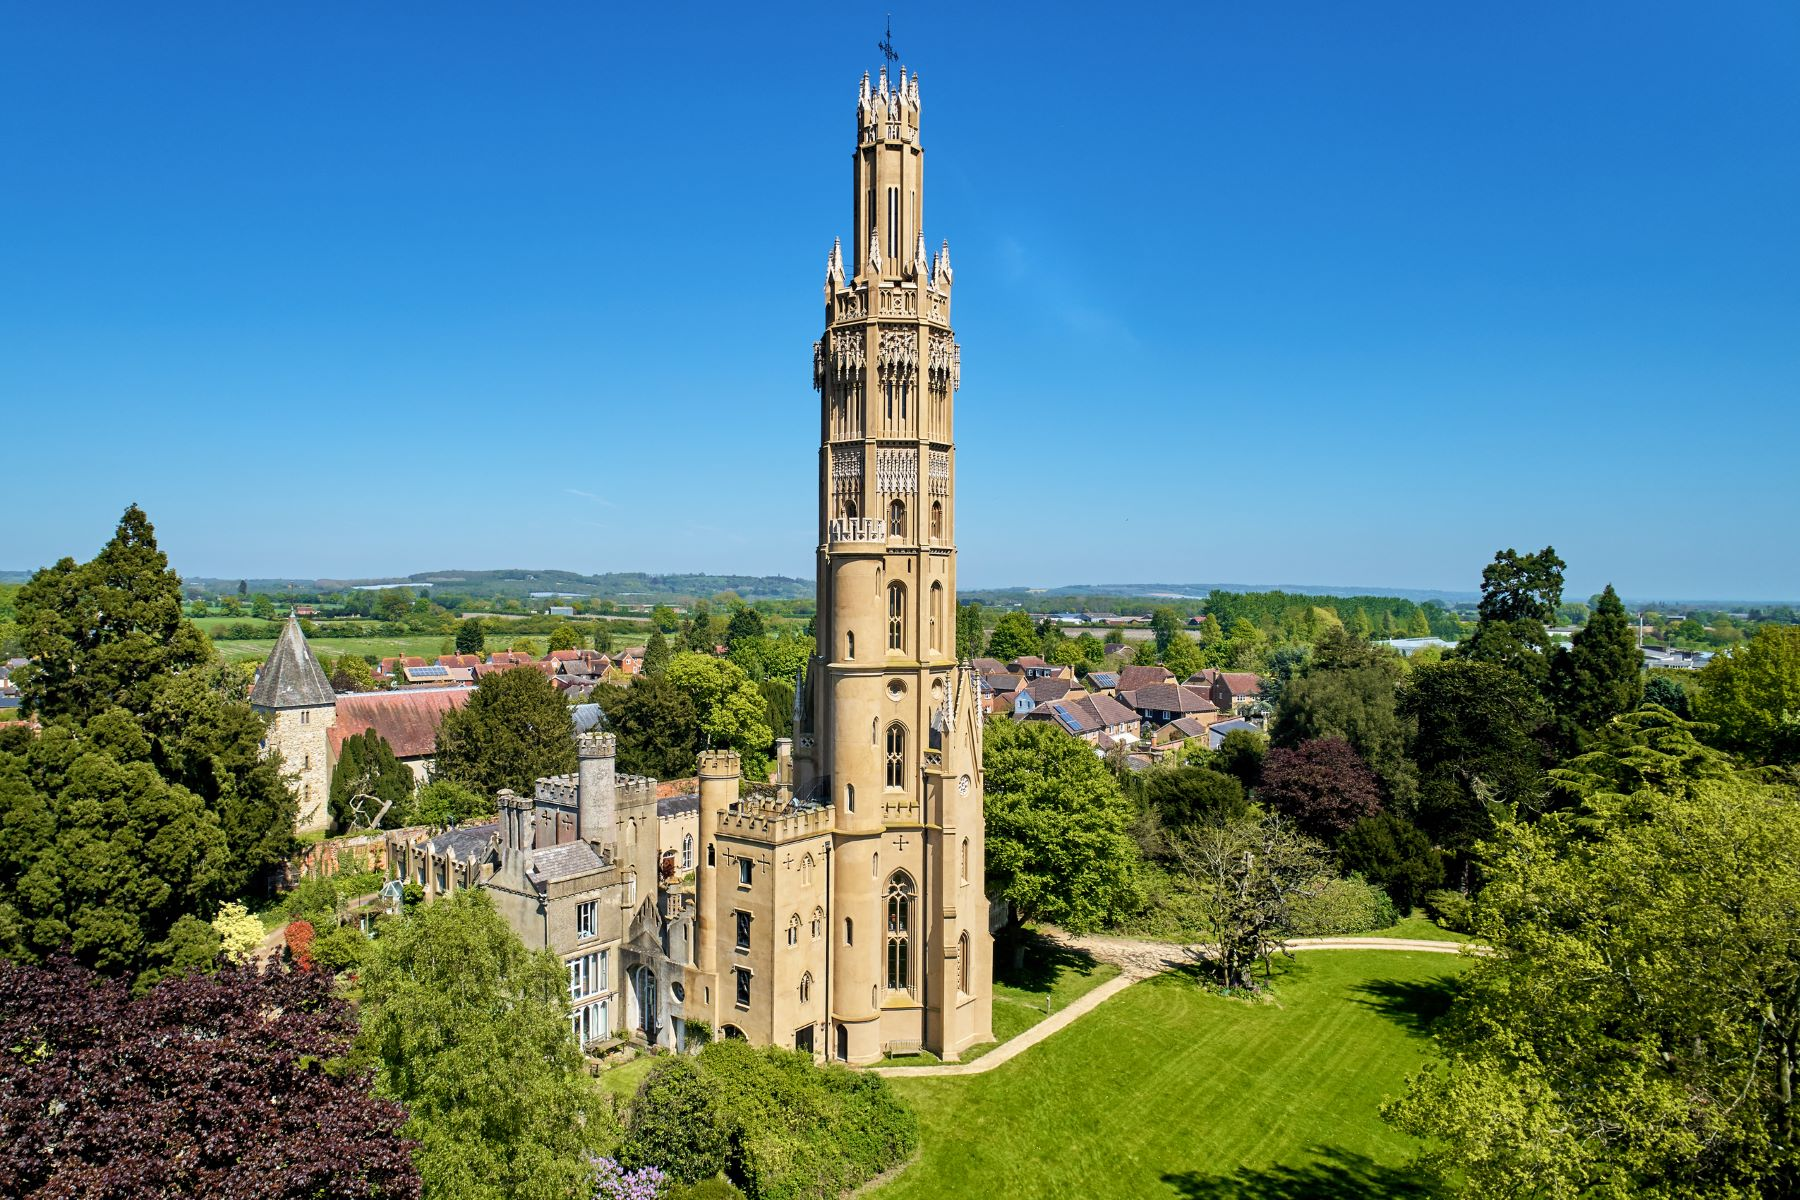 Single Family Homes for Sale at Hadlow Tower Hadlow Other England, England TN11 0EG United Kingdom